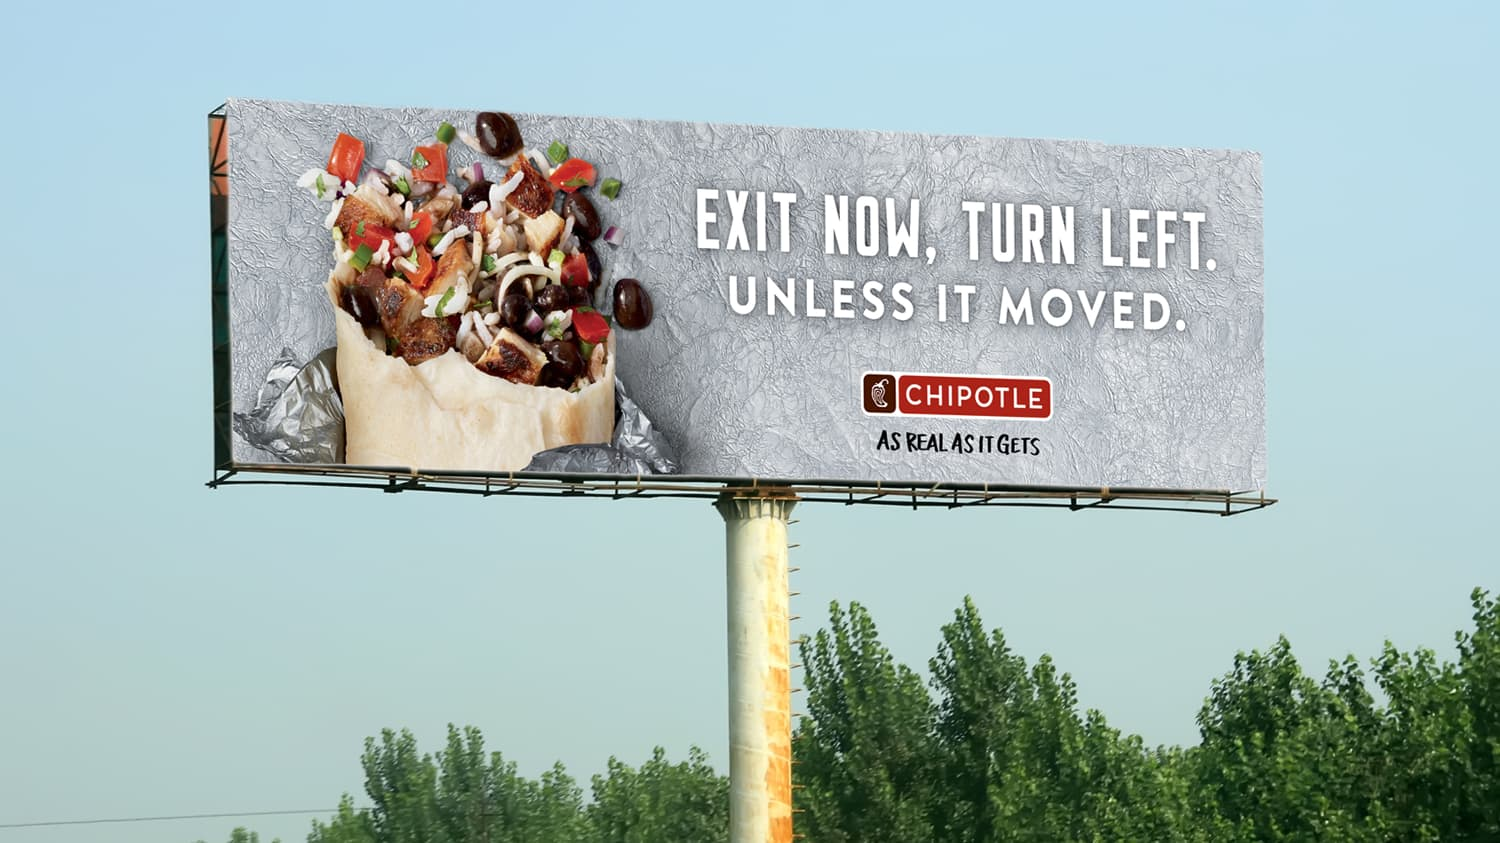 Chipotle - As Real As It Gets